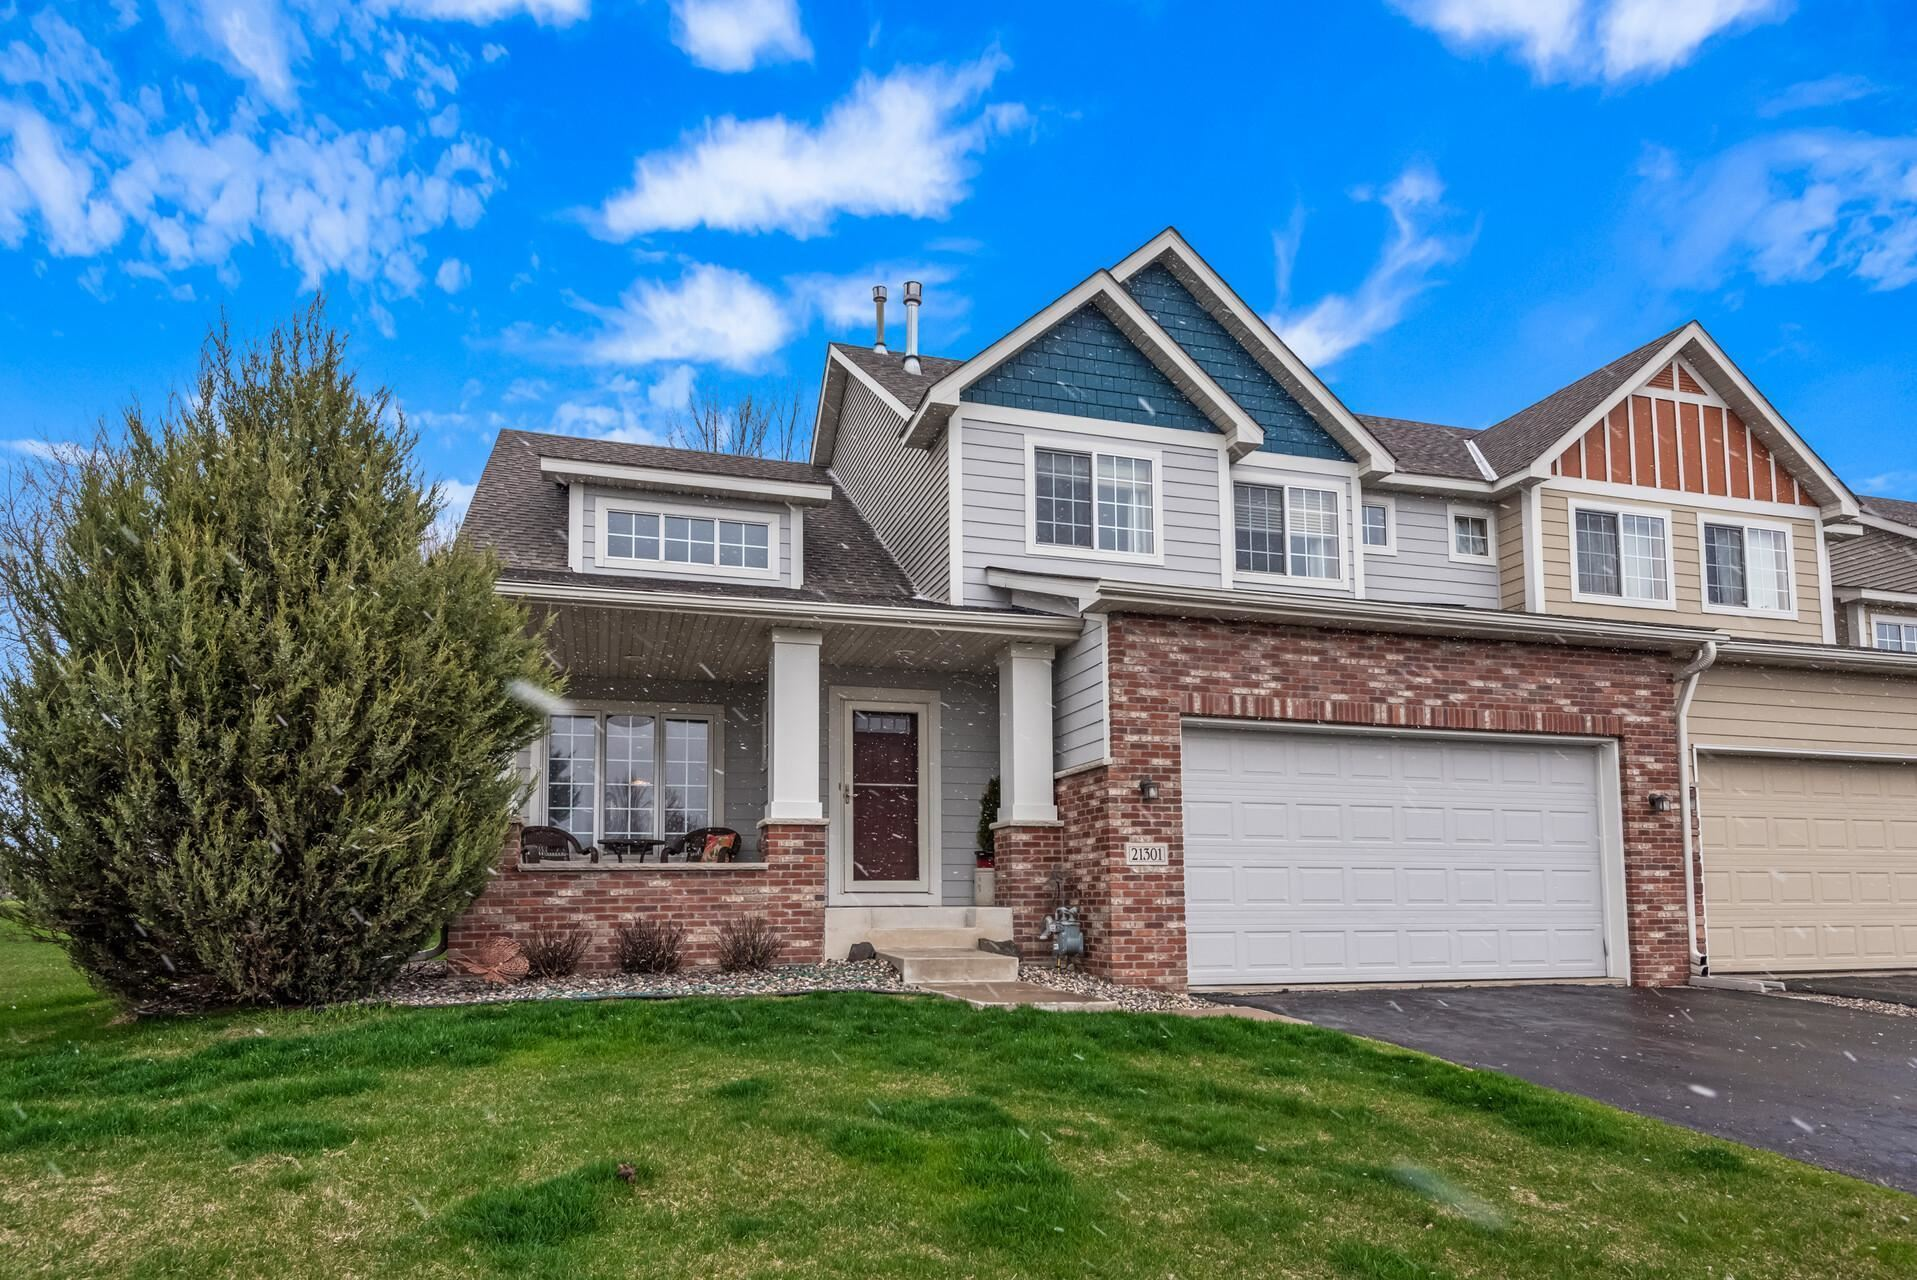 Photo of 21301 Hytrail Circle, Lakeville, MN 55044 (MLS # 5742956)